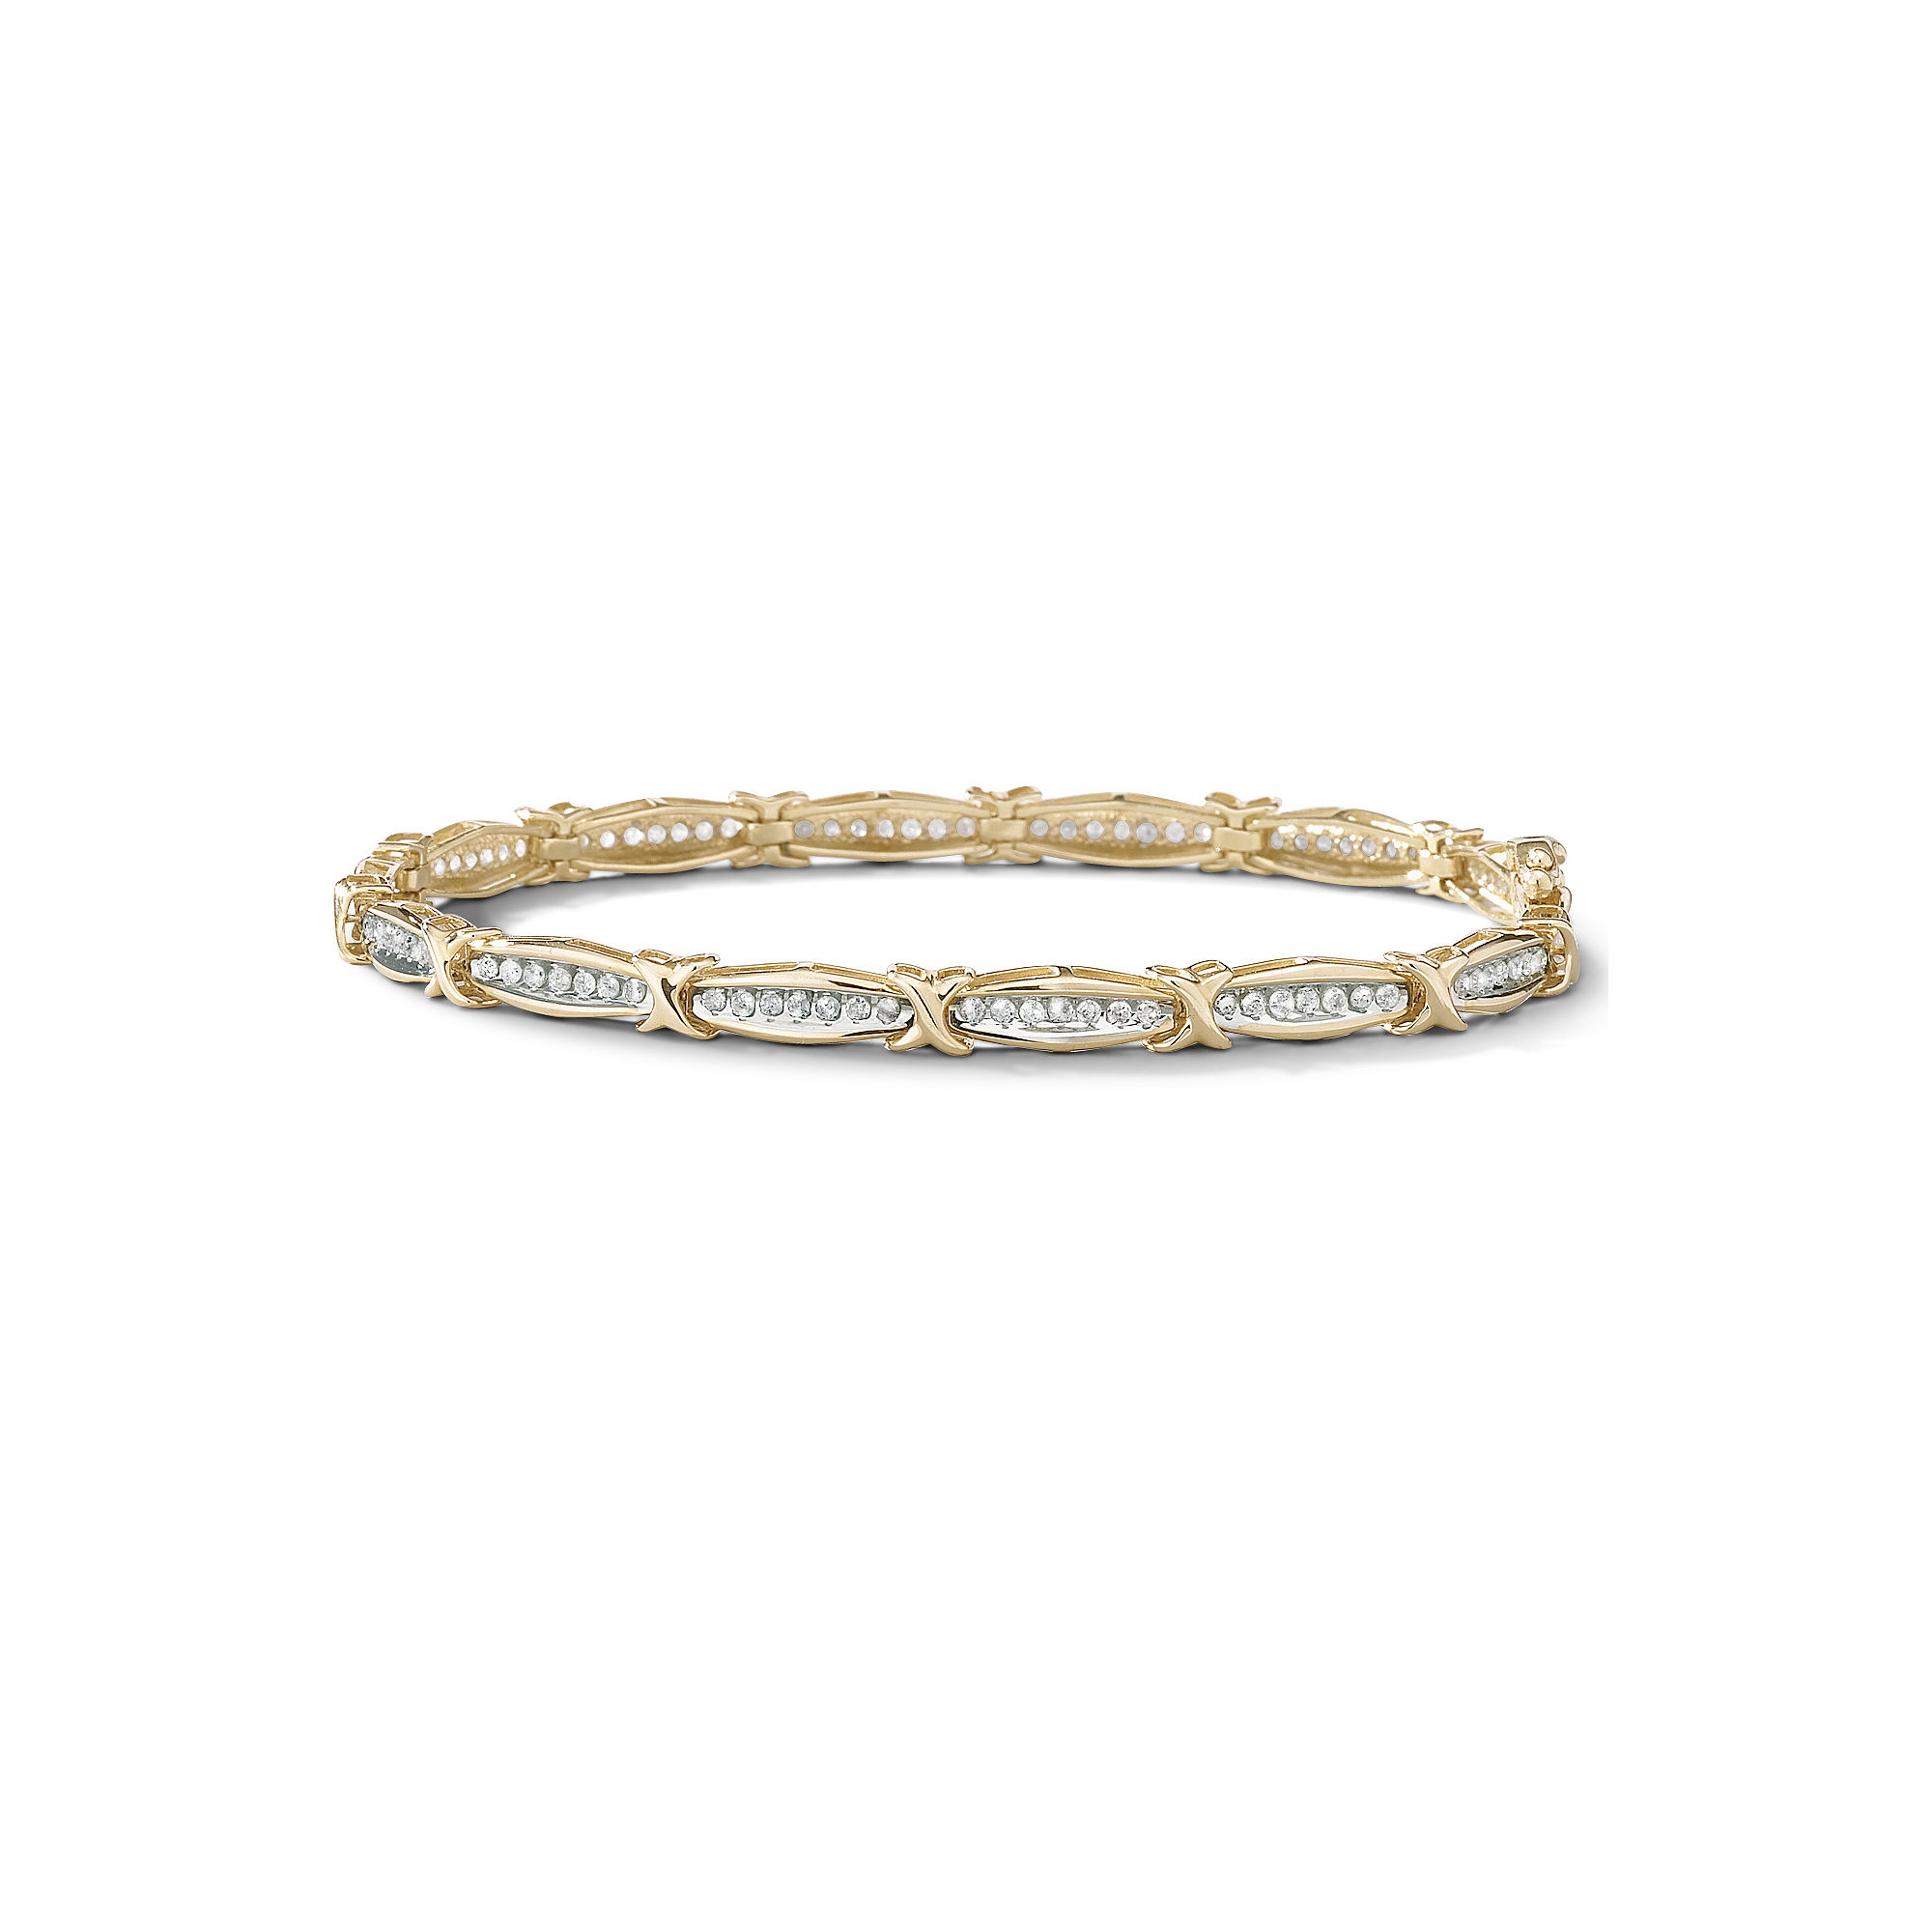 1 CT. T.W. Diamond Tennis Bracelet